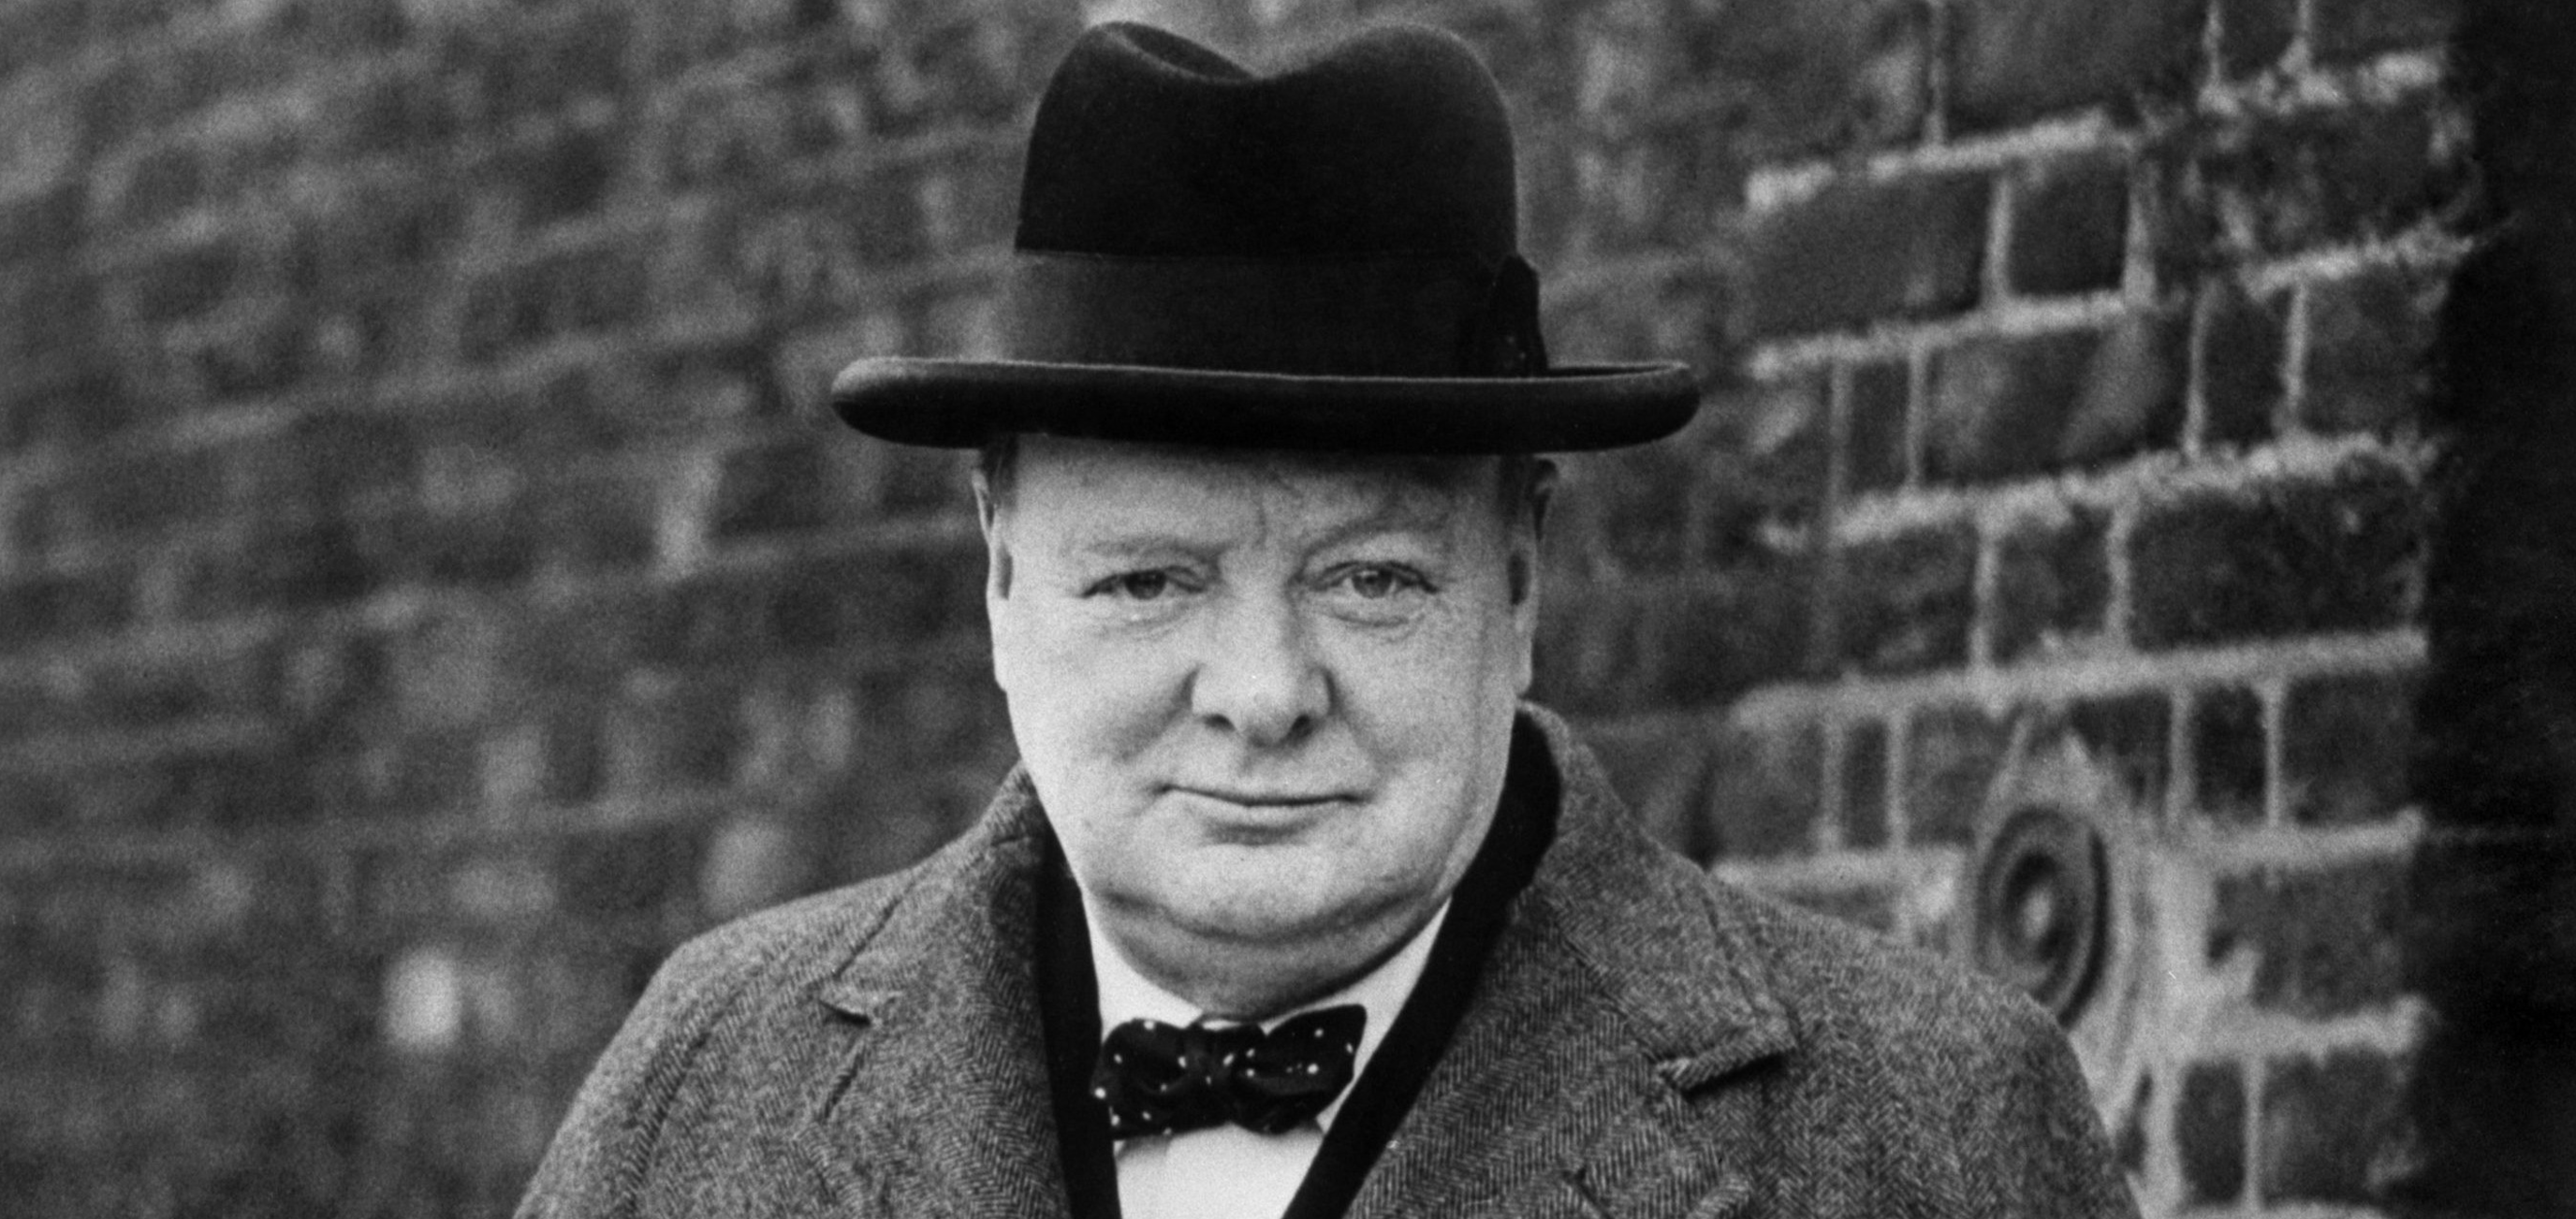 Prime Minister Winston Churchill's Report to the House of Commons in June 1940